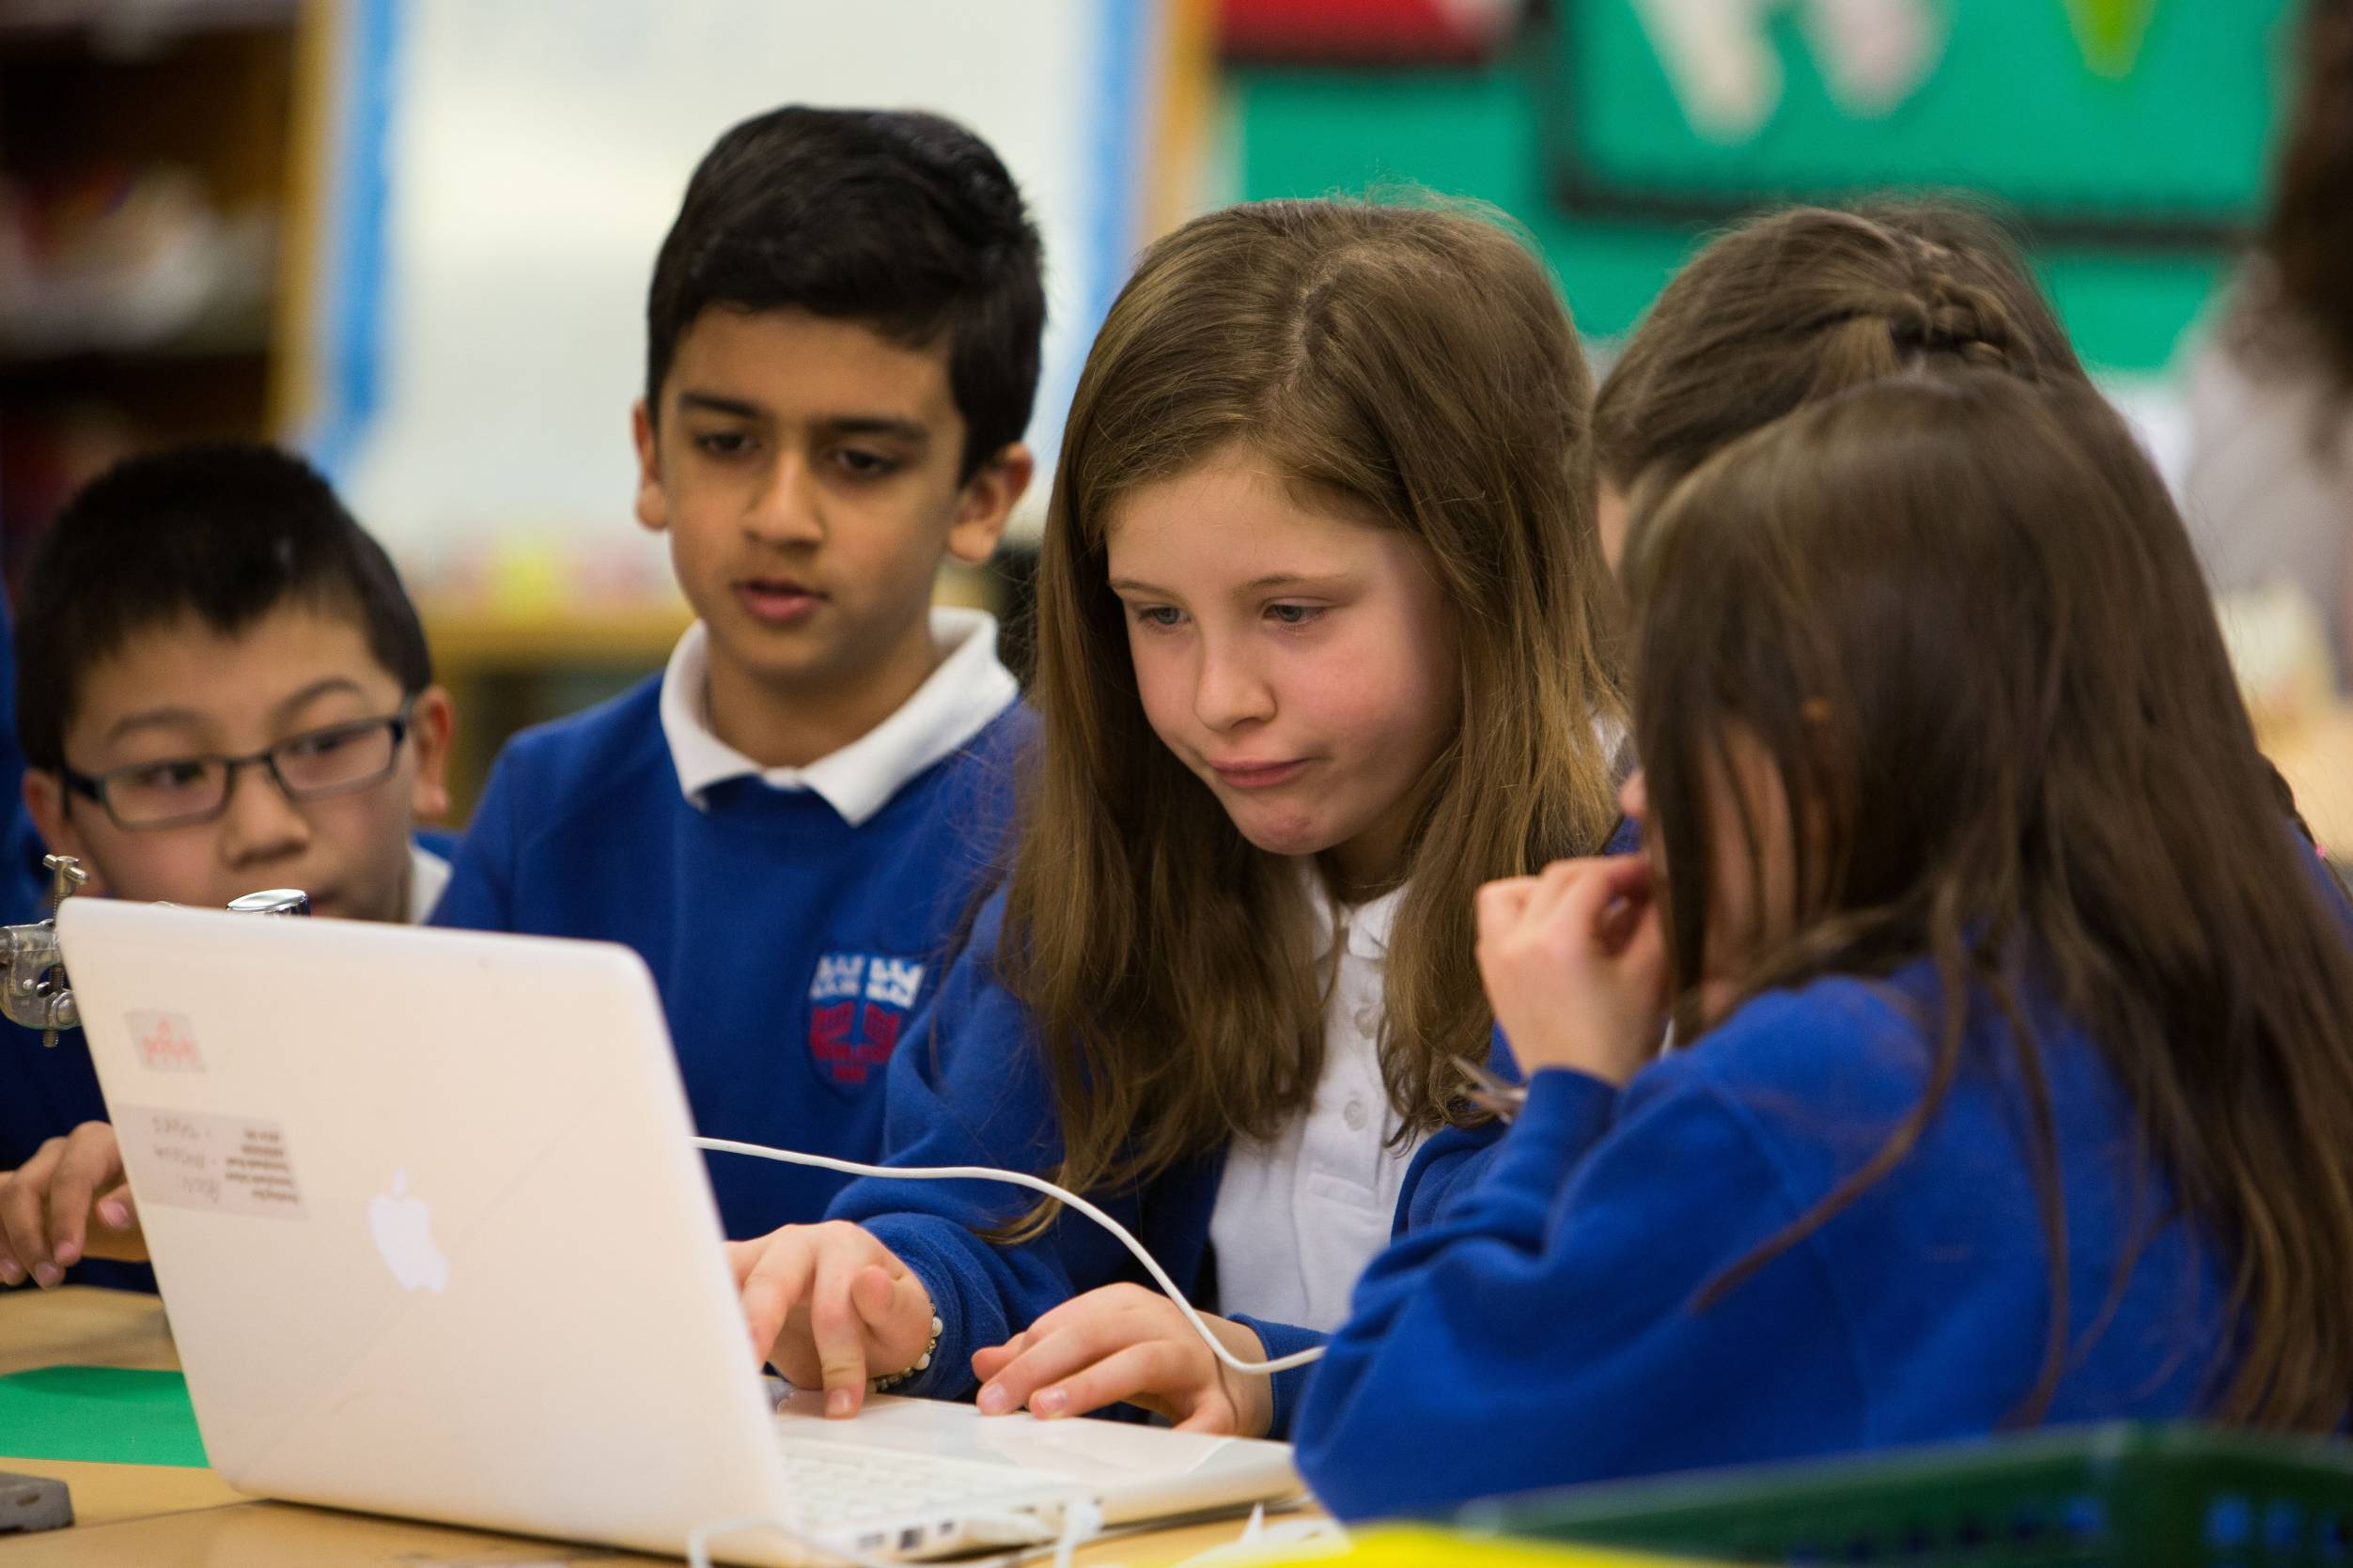 Middleton Park School has received an all-time best report by inspectors of Education Scotland.